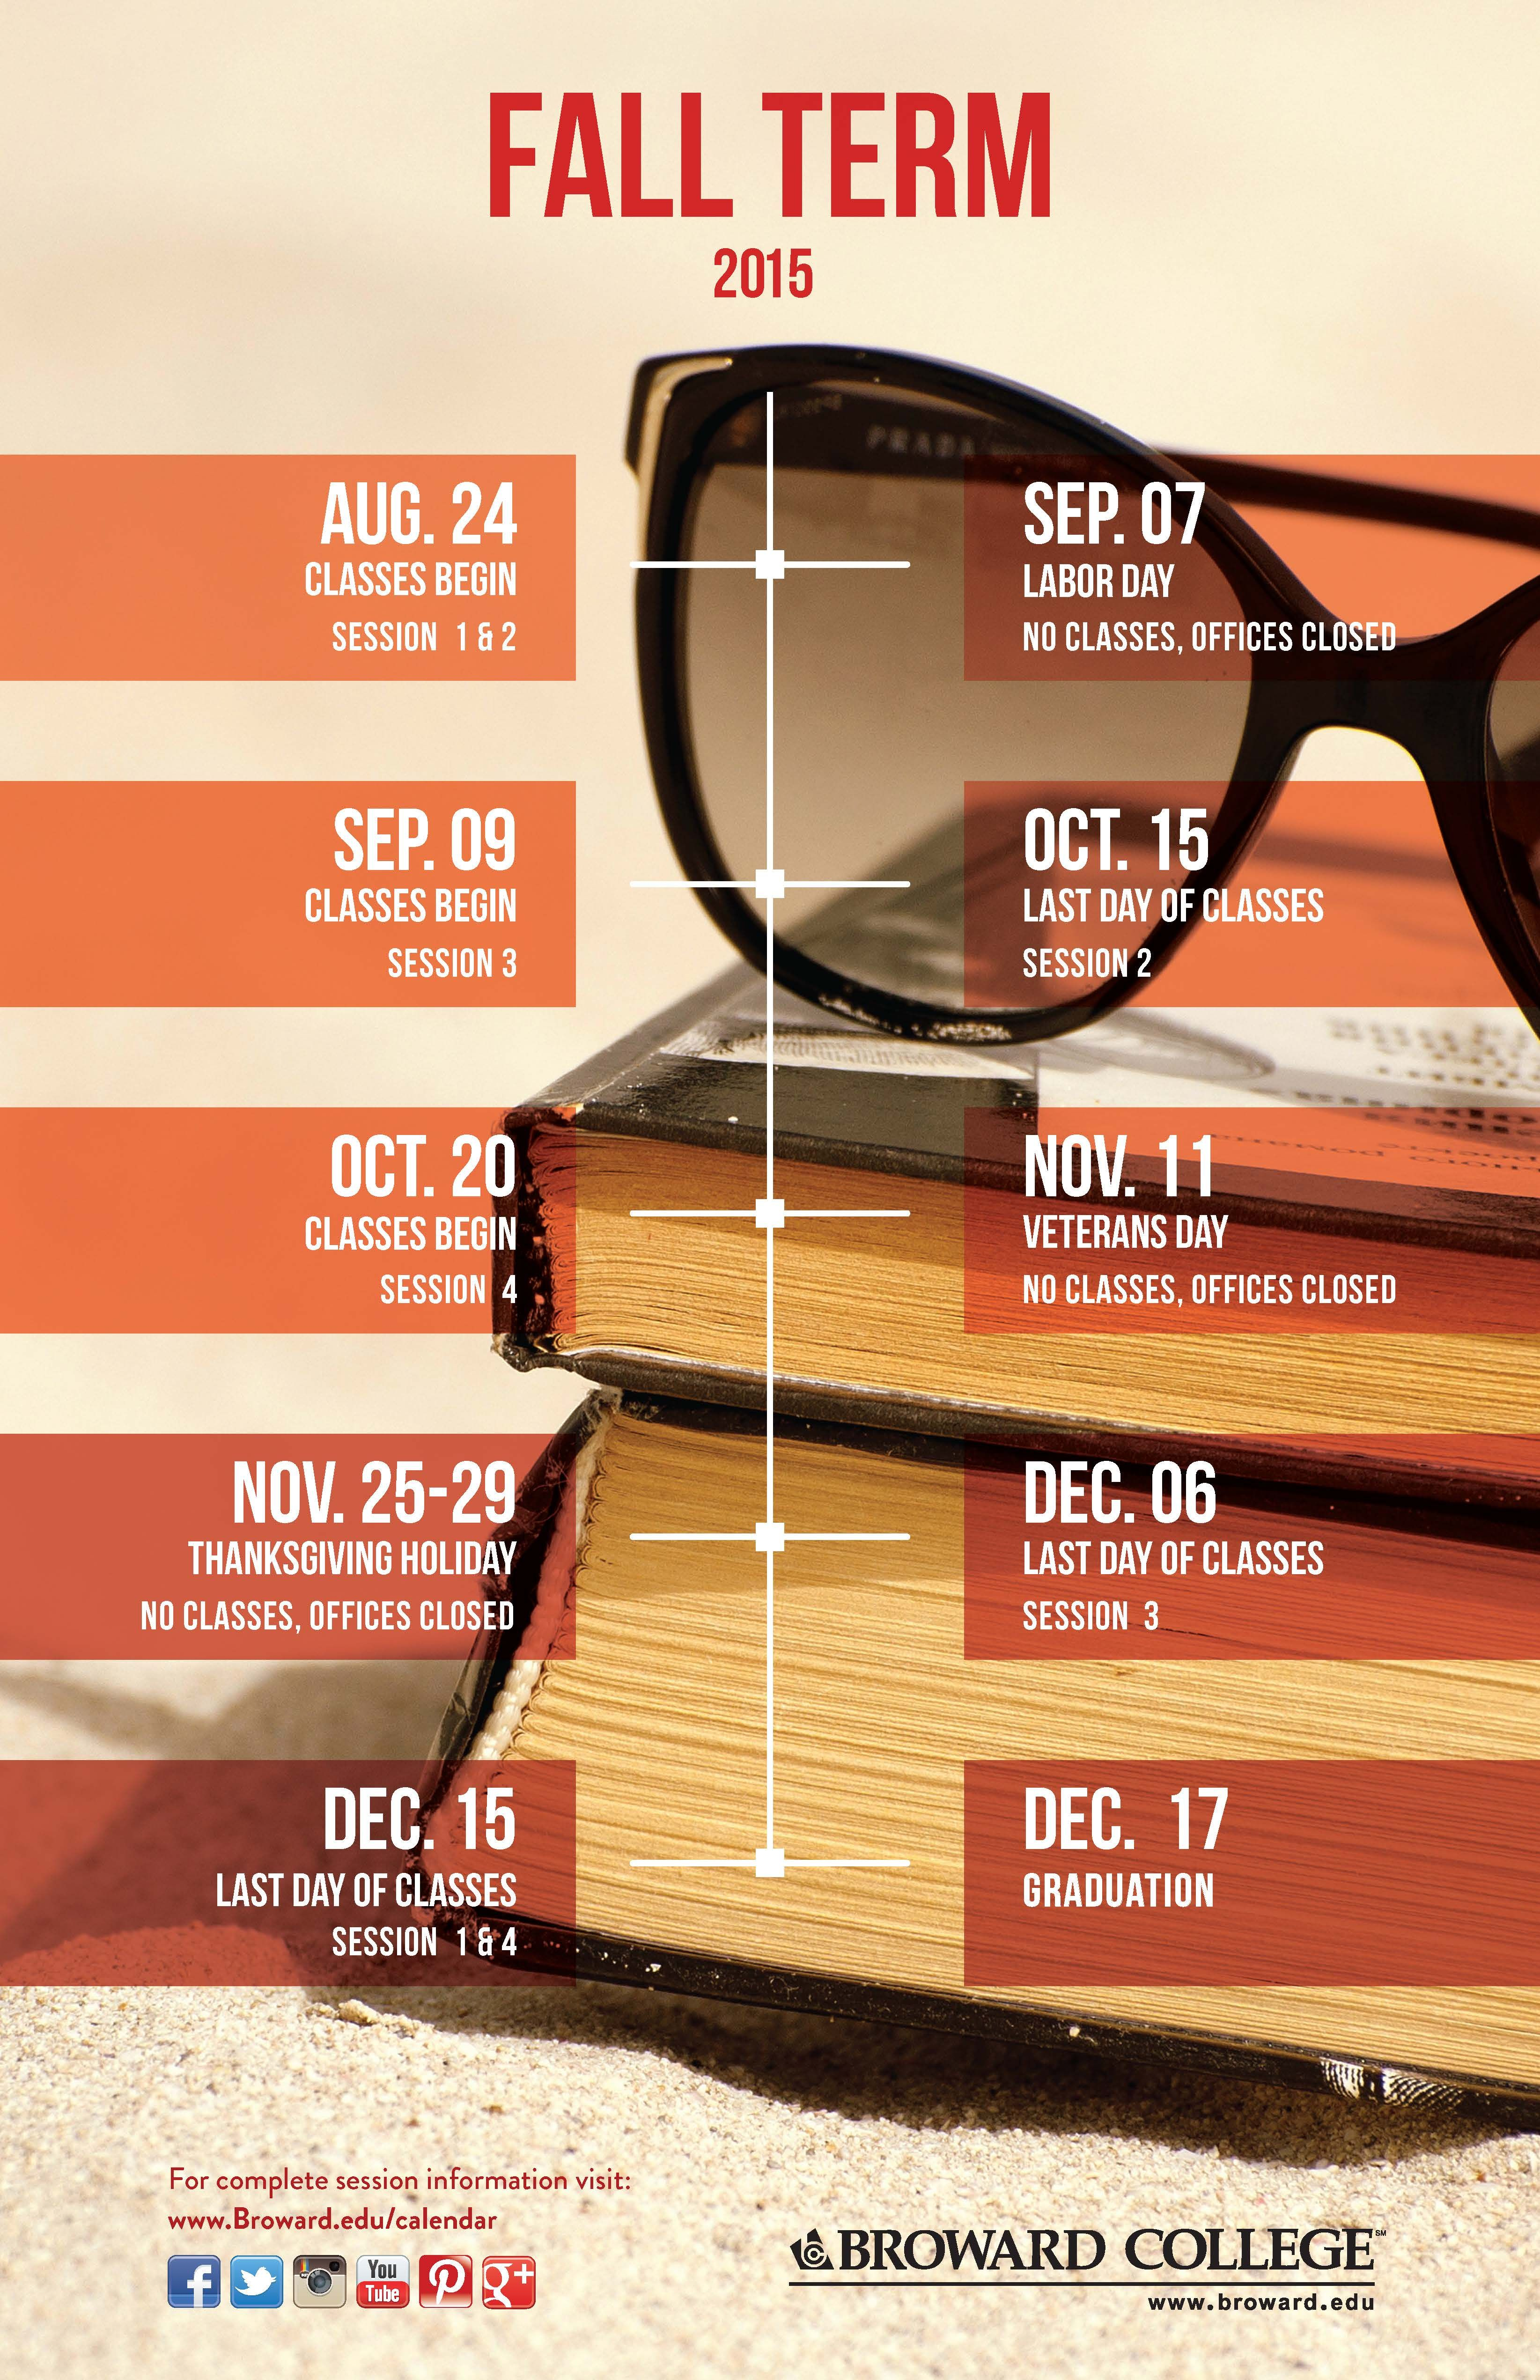 Fall 2015 Important Dates Academic Calendar Exam Schedule